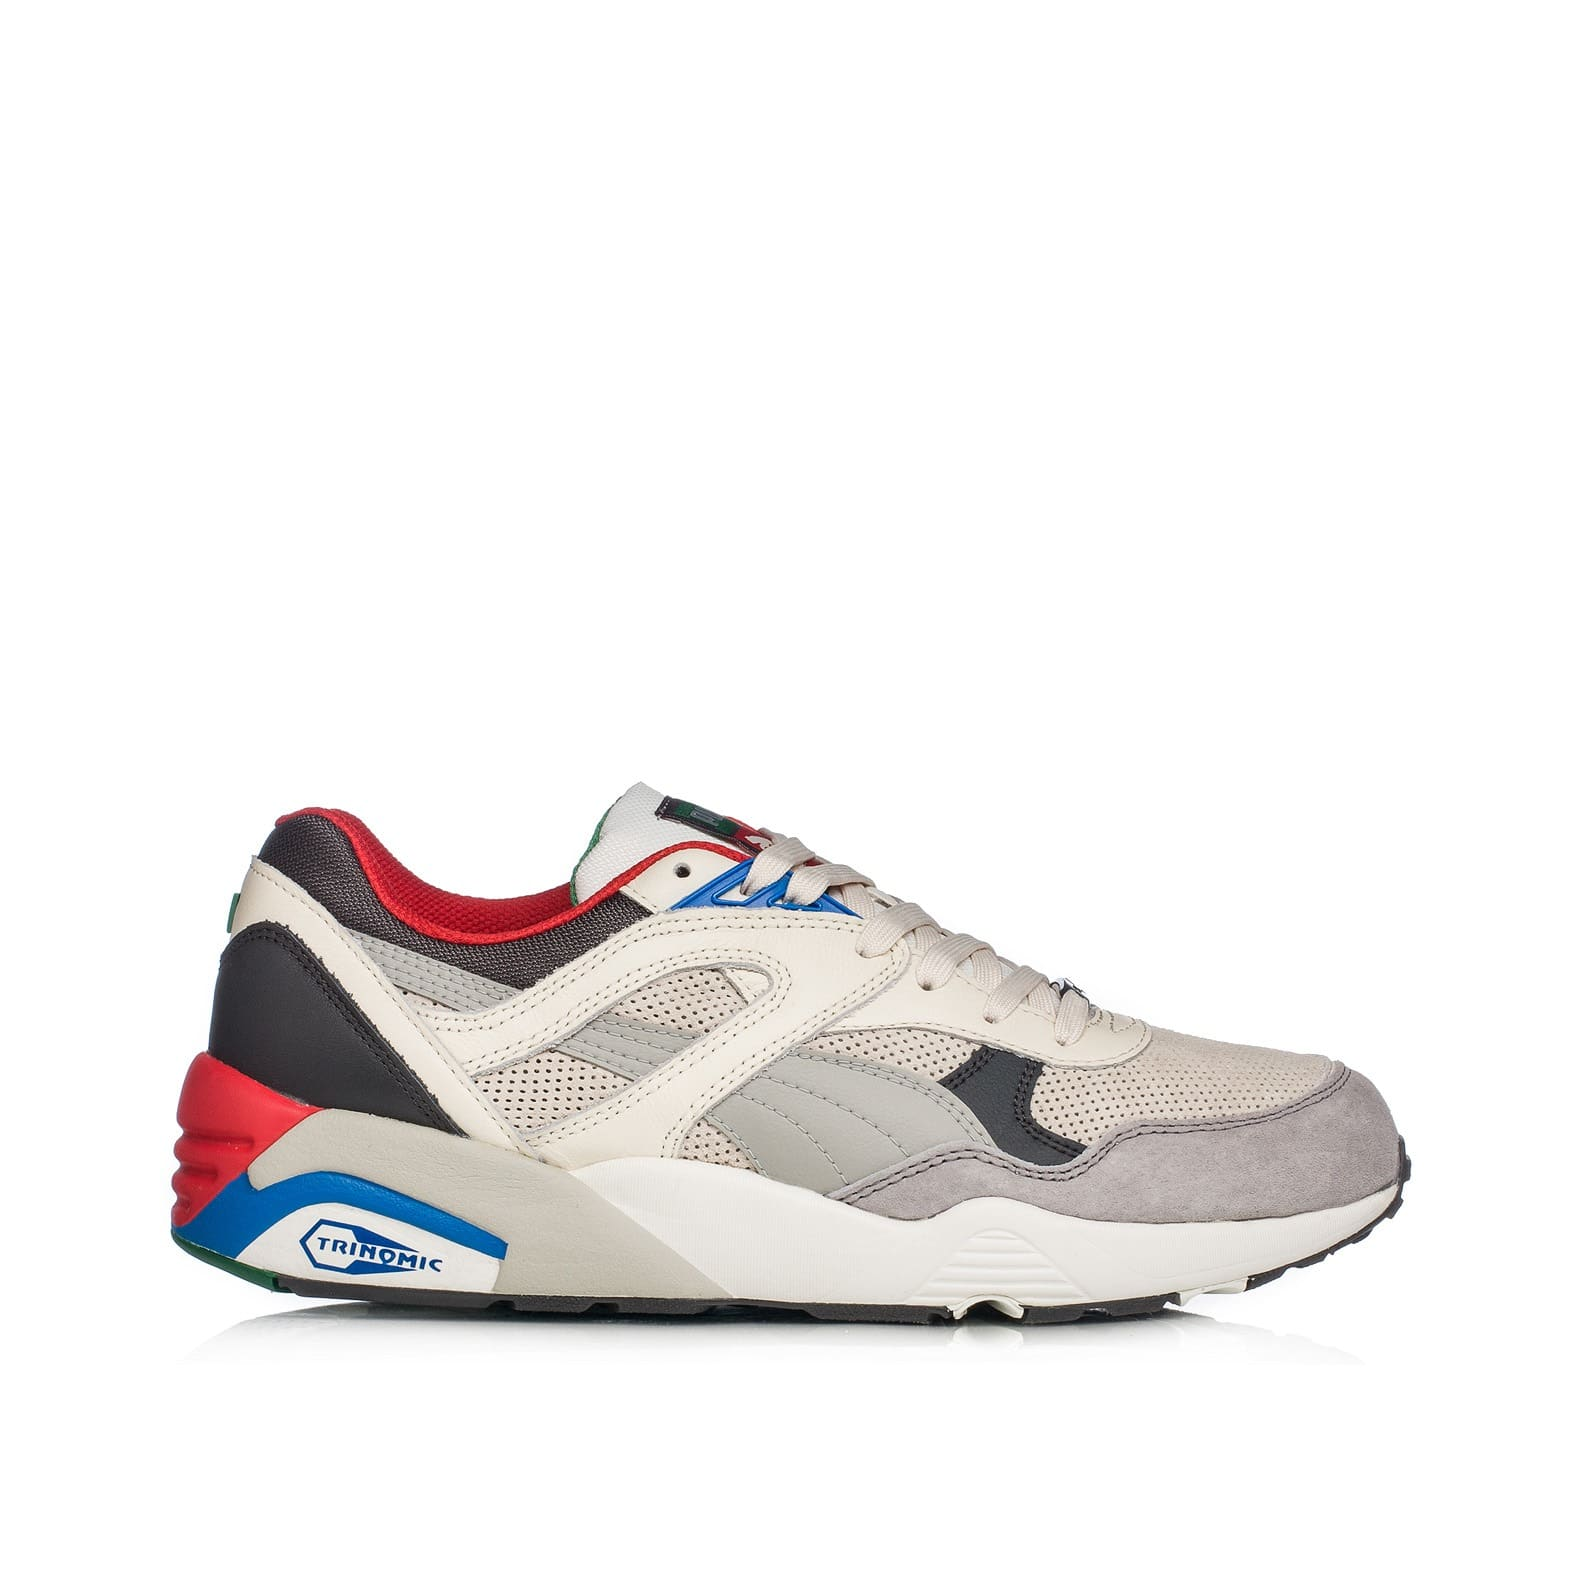 puma-trinomic-r698-flag-pack-whisper-white-drizzle-asphalt-361450-01